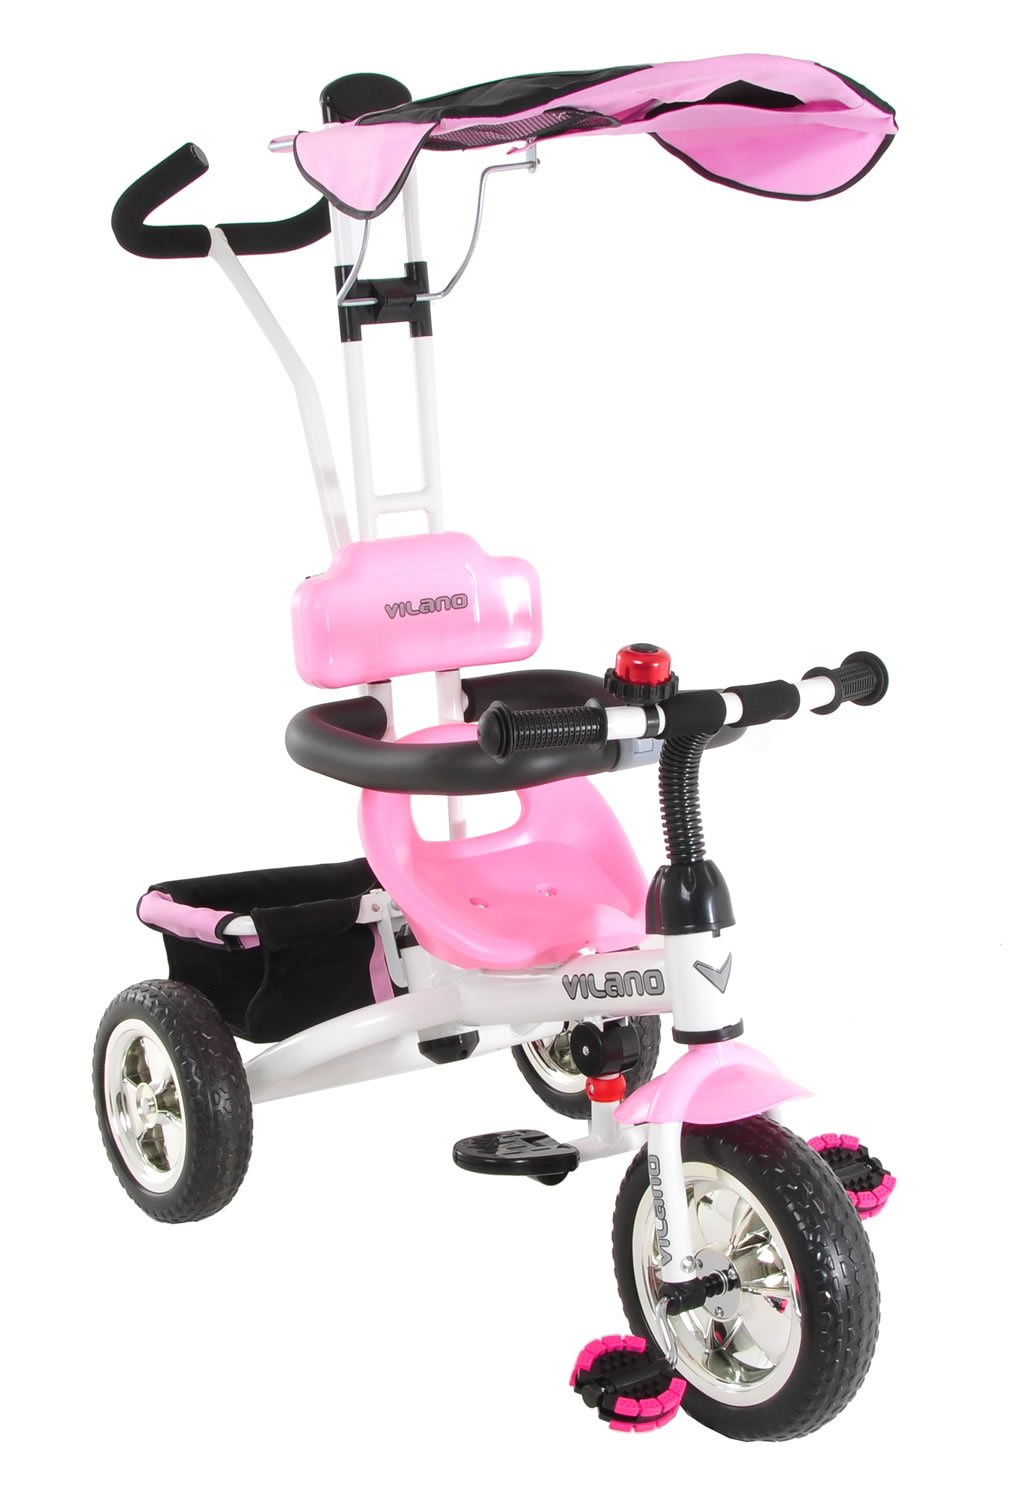 Vilano 3 in 1 Tricycle & Learn to Ride Trike, Pink